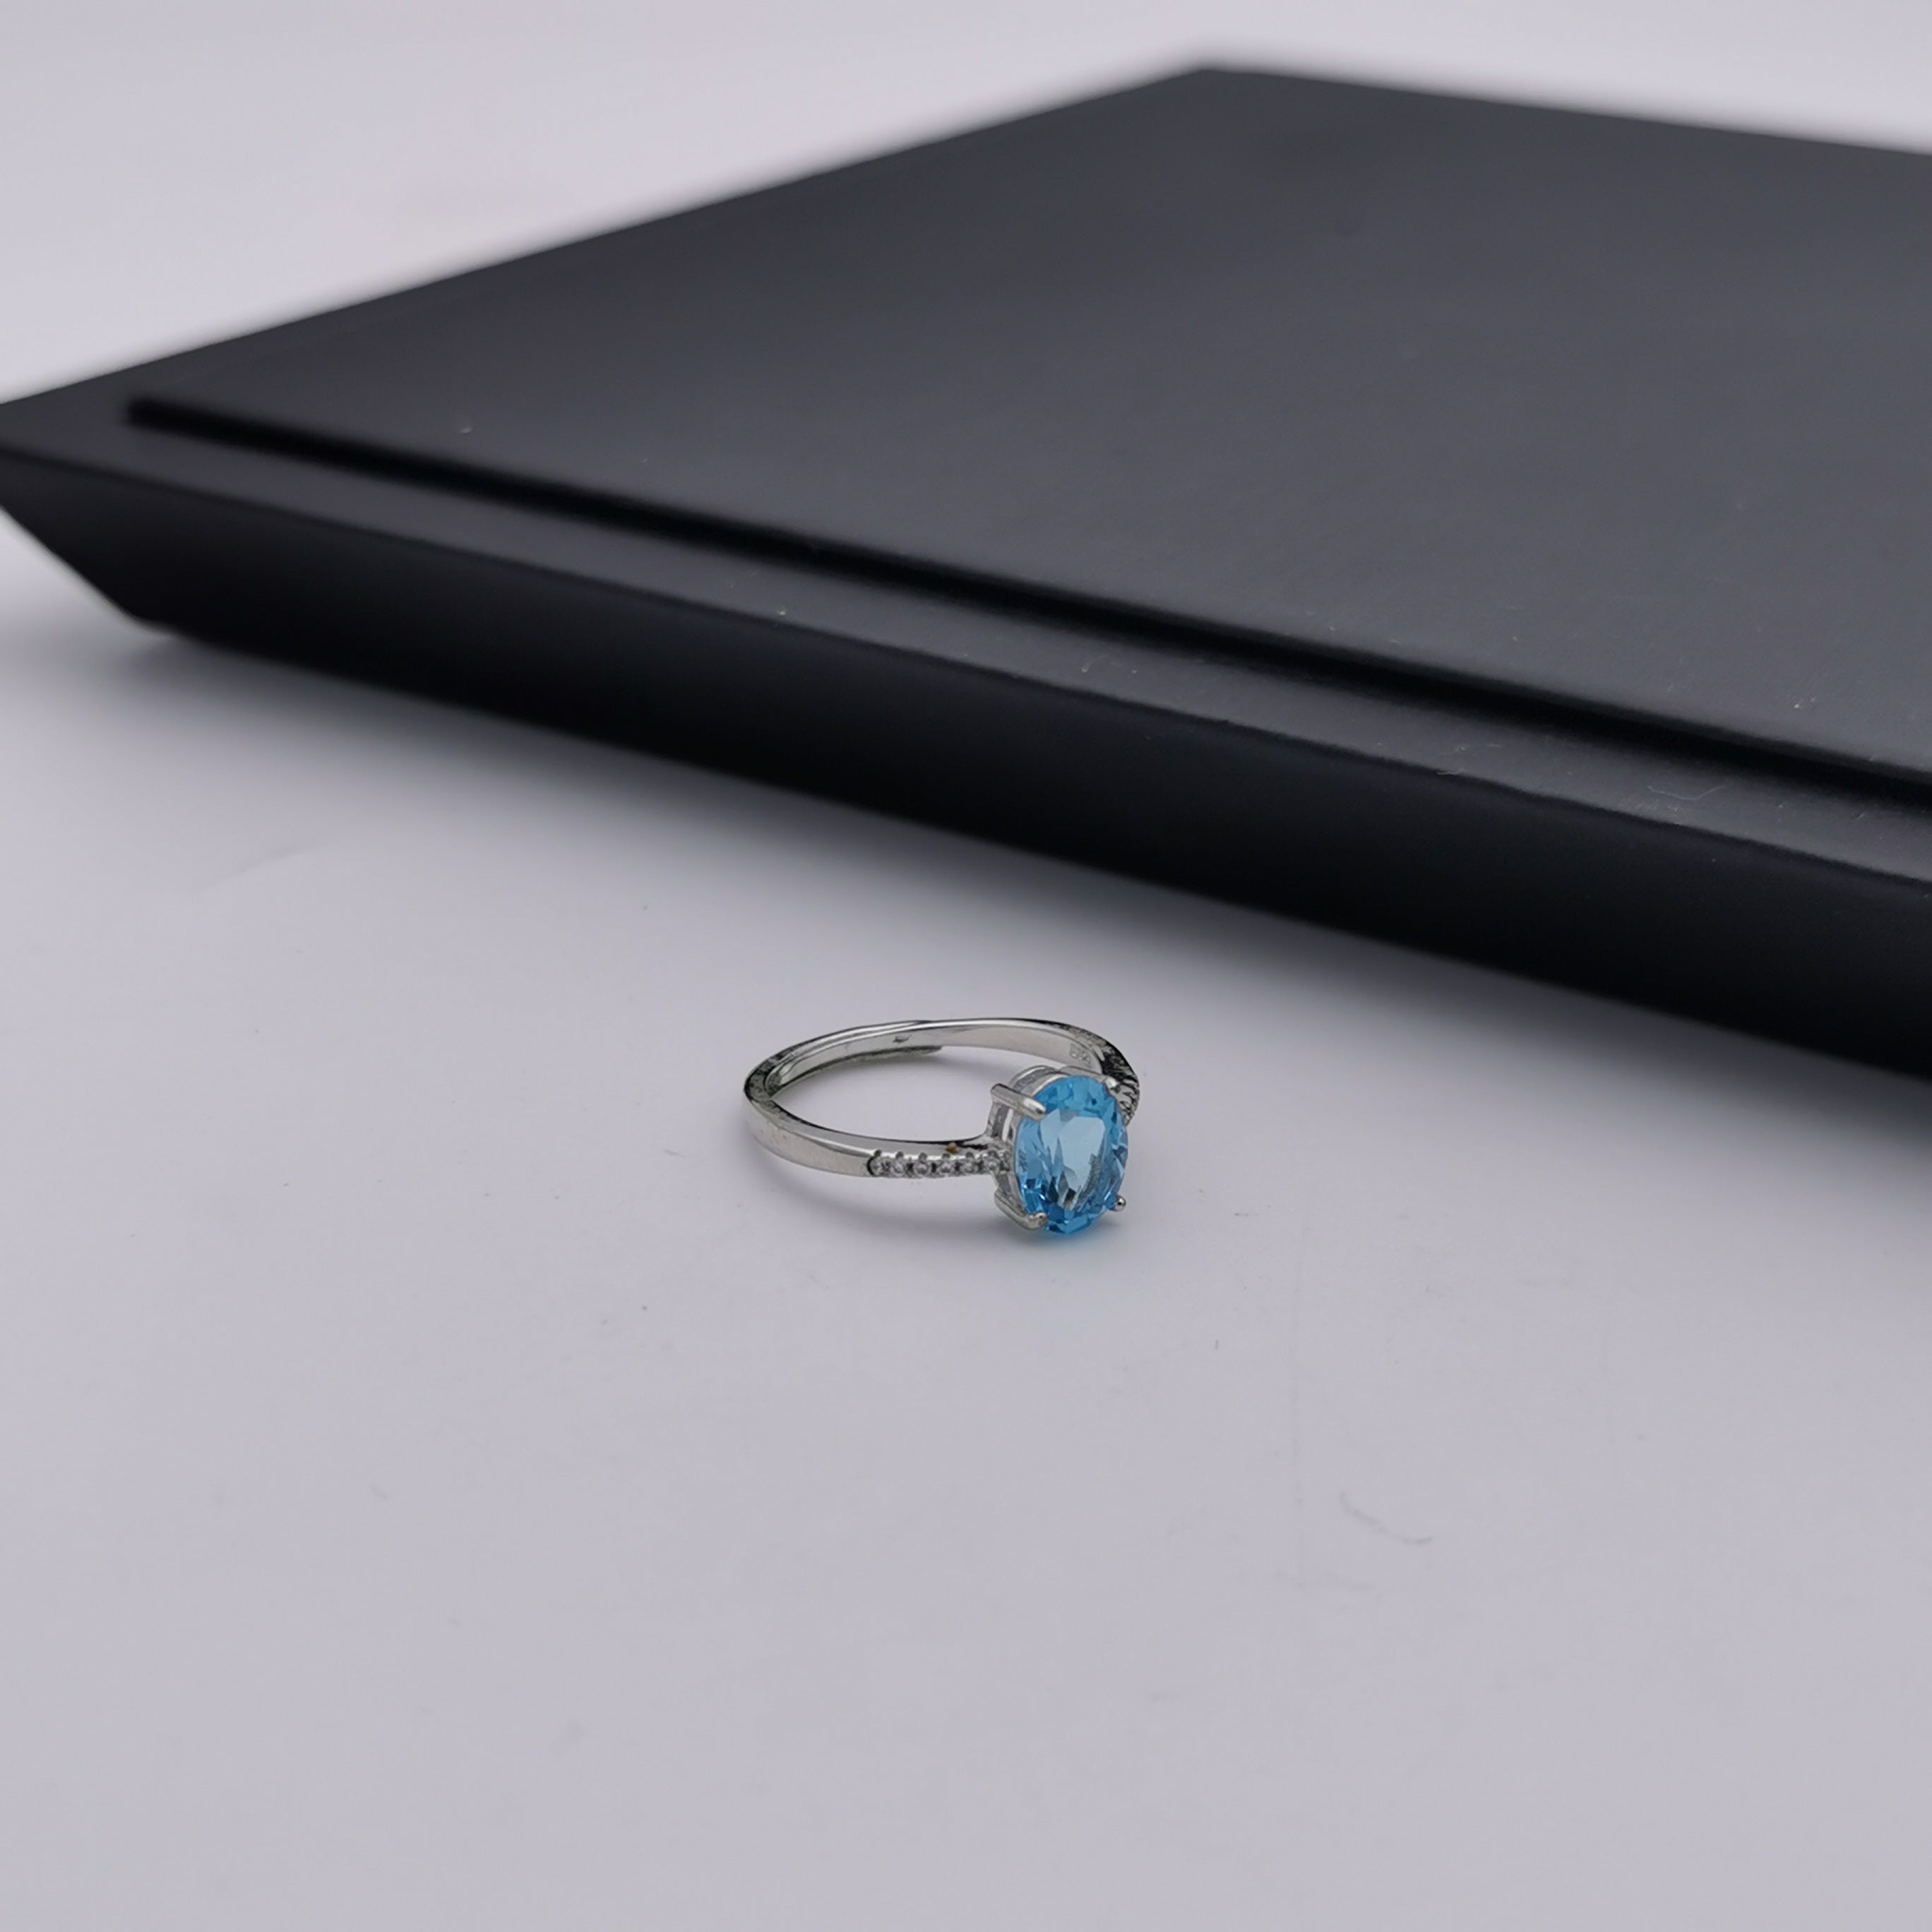 Sterling silver adjustable blue topaz ring